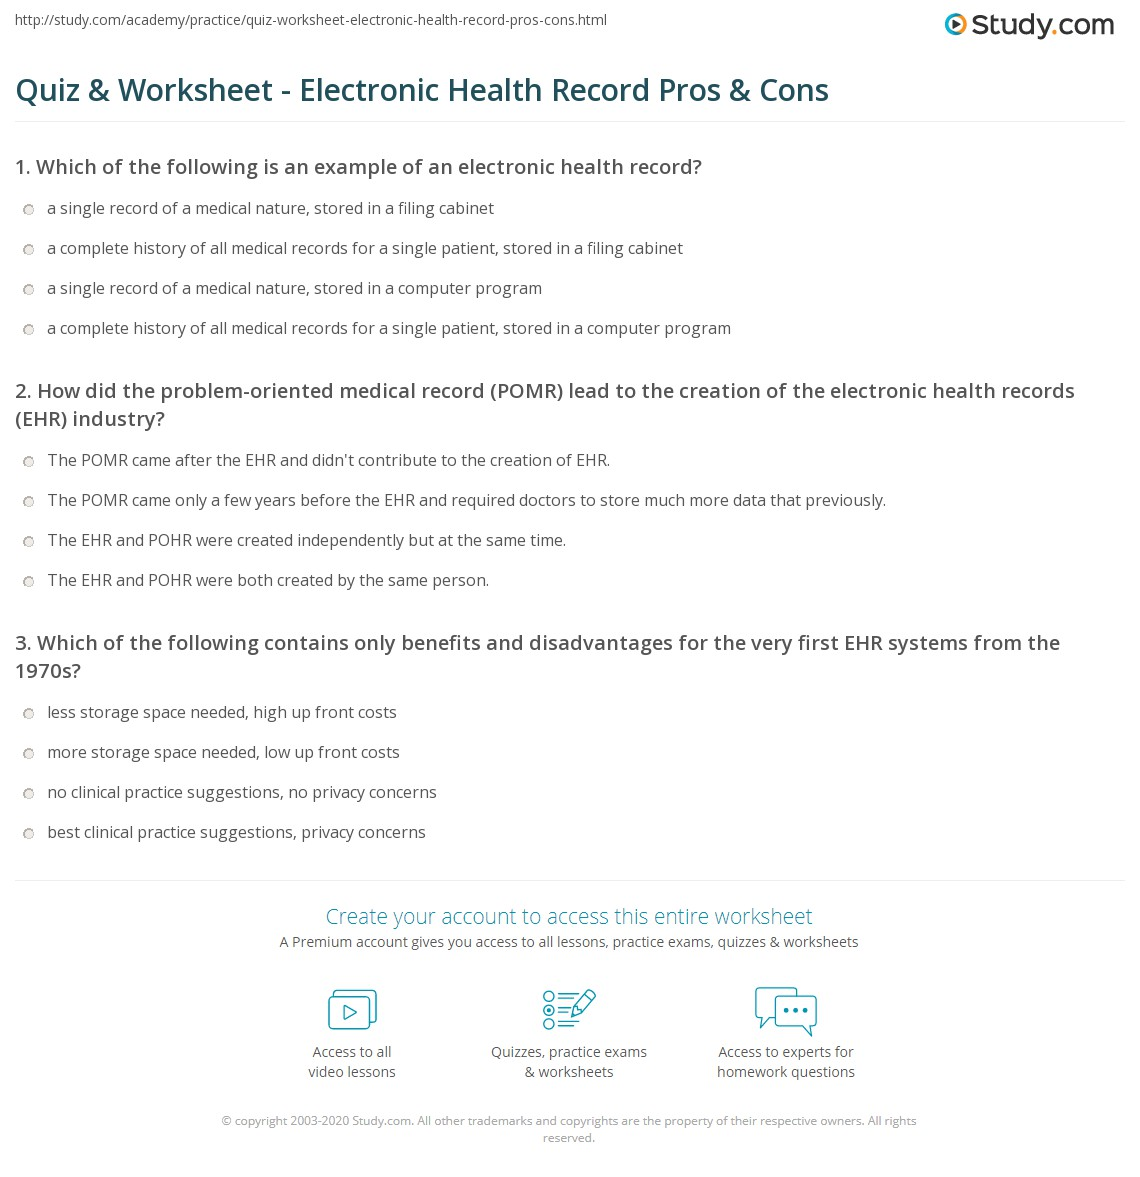 pros and cons of using electronic health records